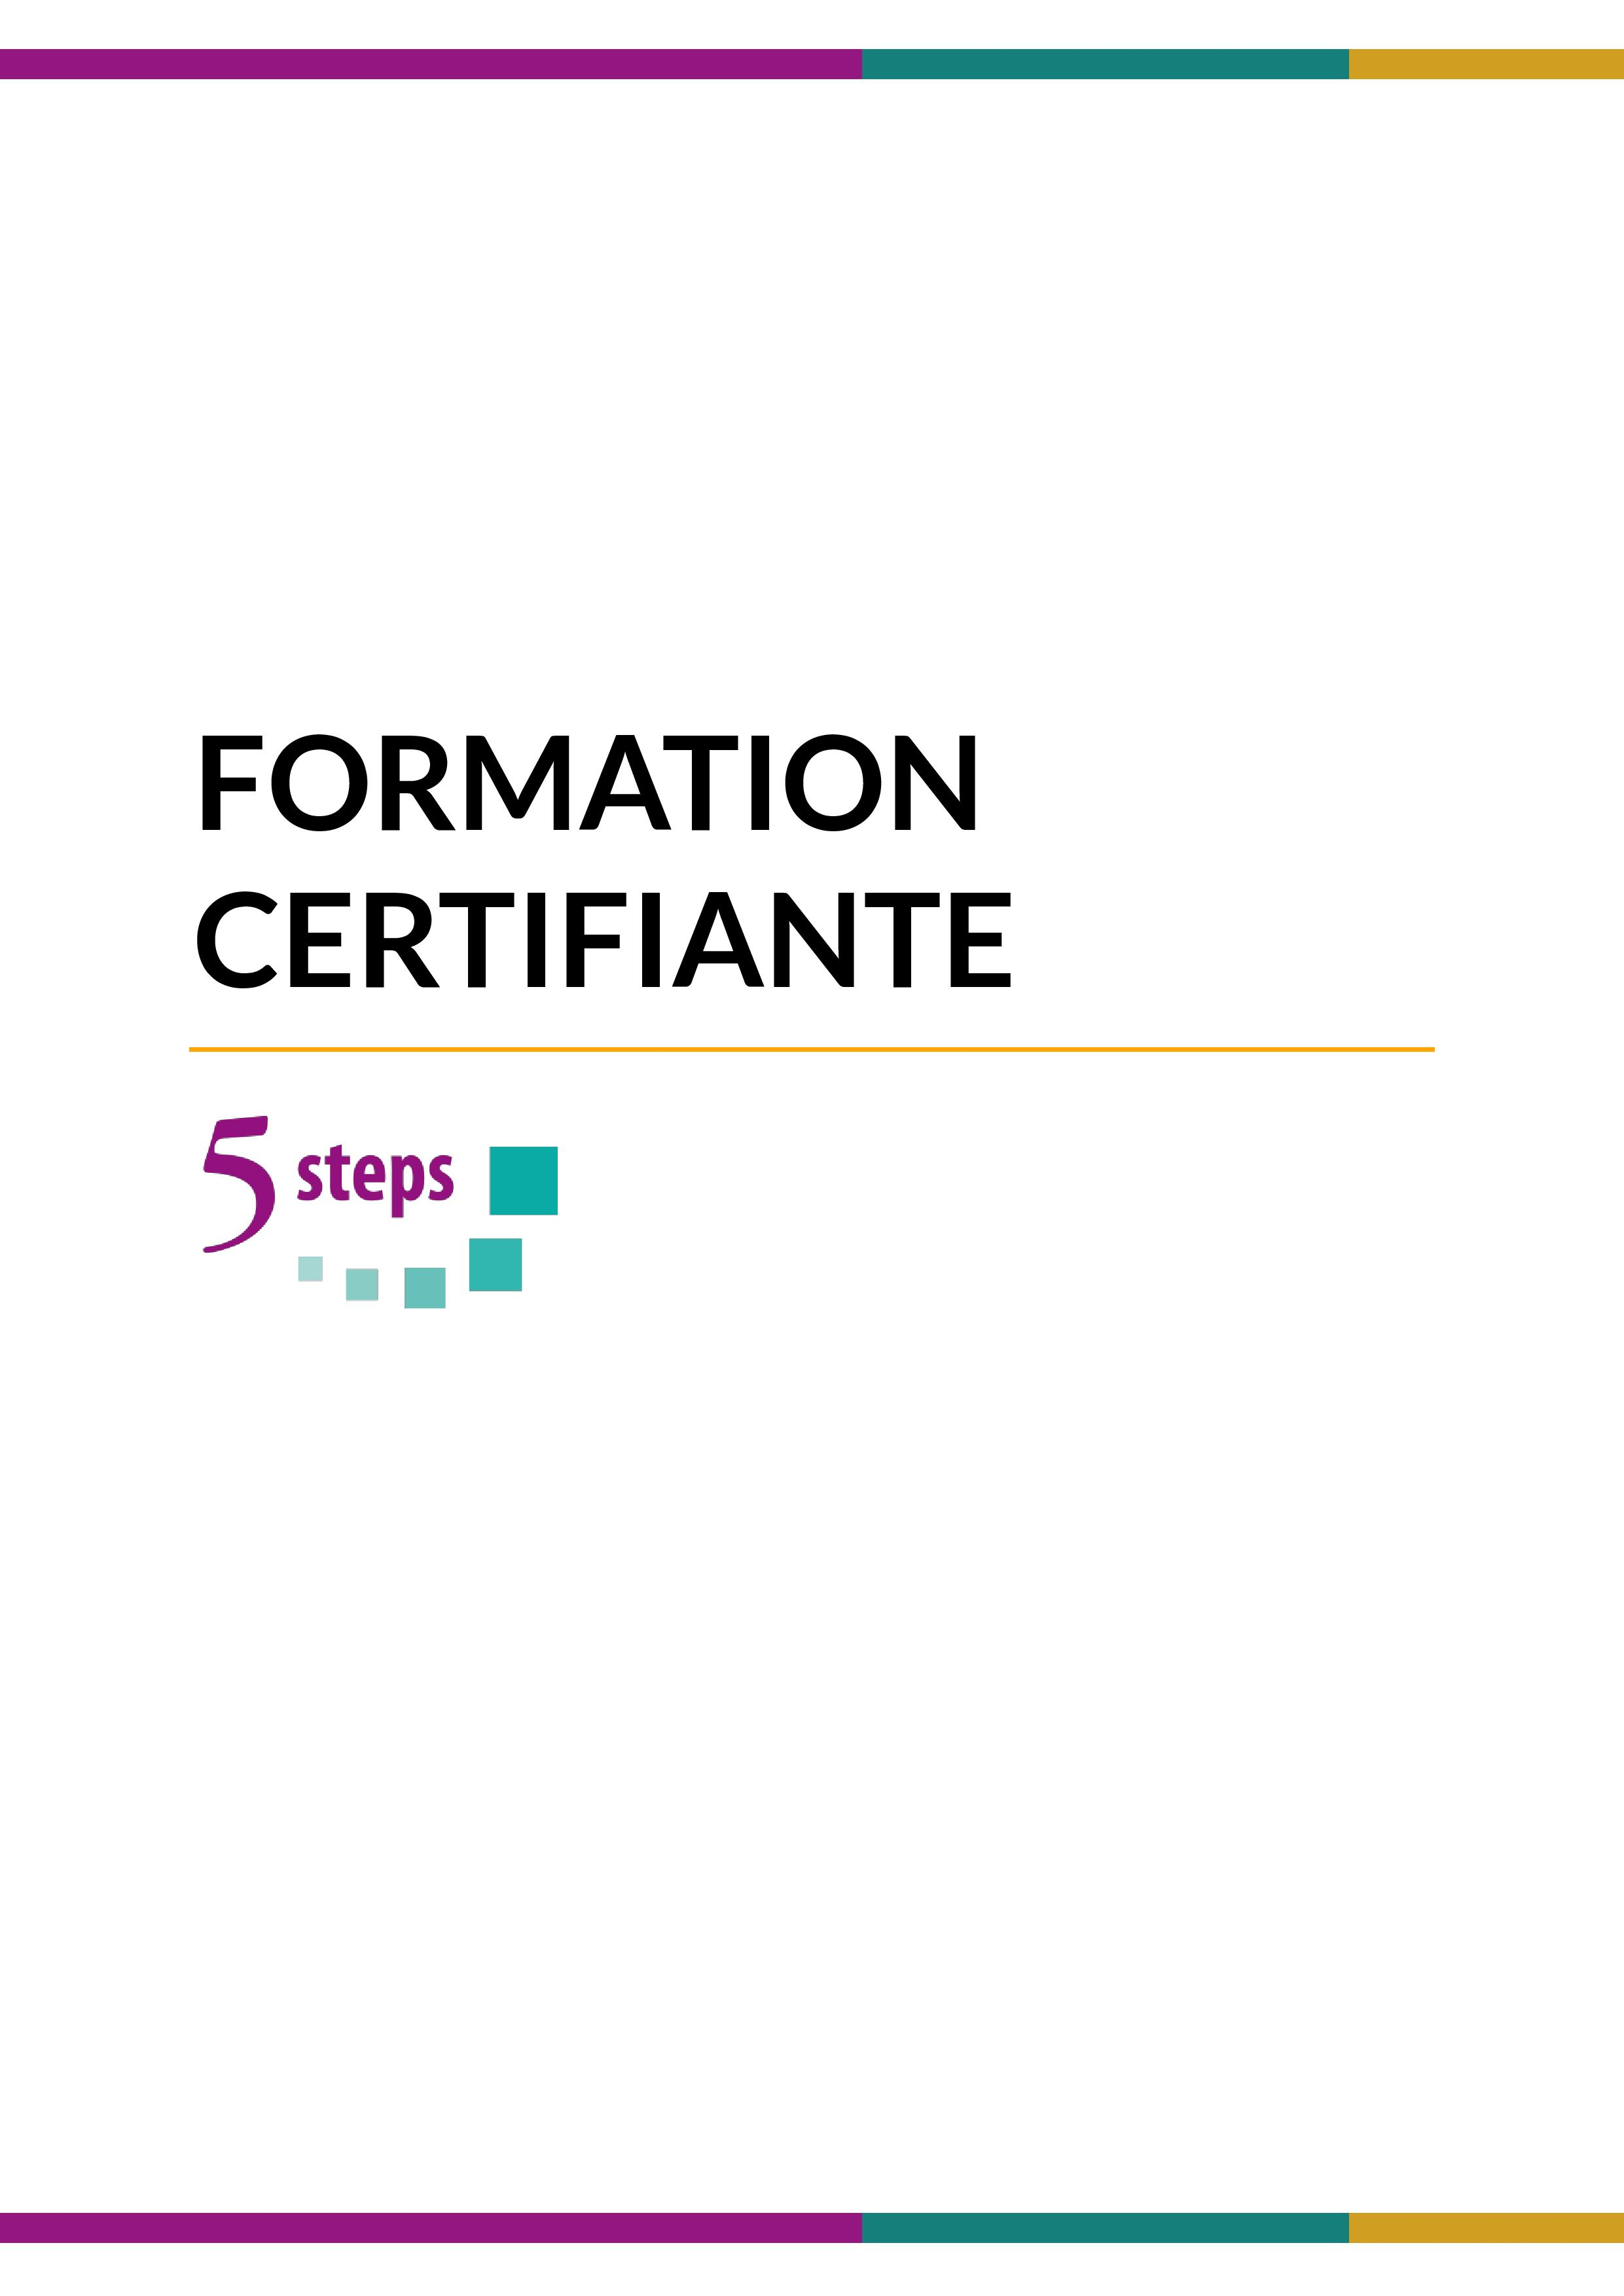 FORMATION CERTIFIANTE-page-001 (1)